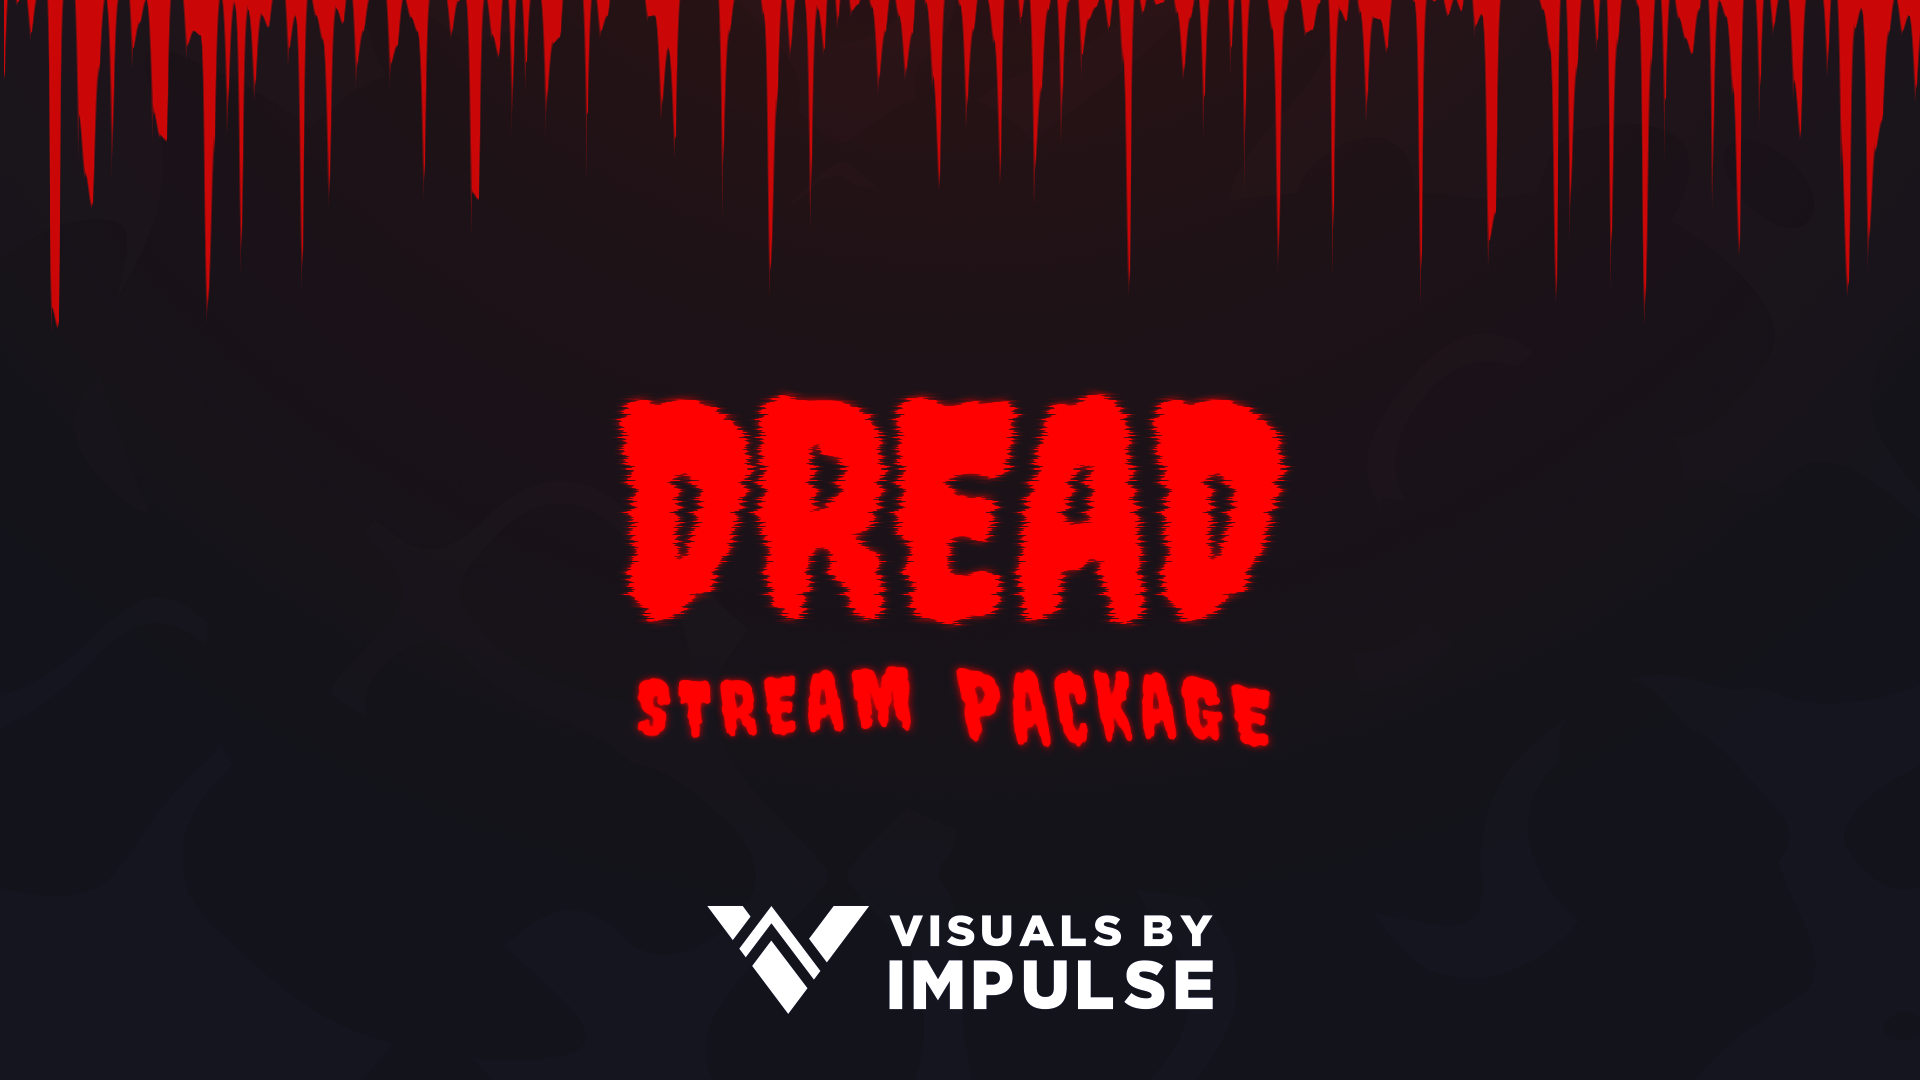 Dread Stream Package - Visuals by Impulse